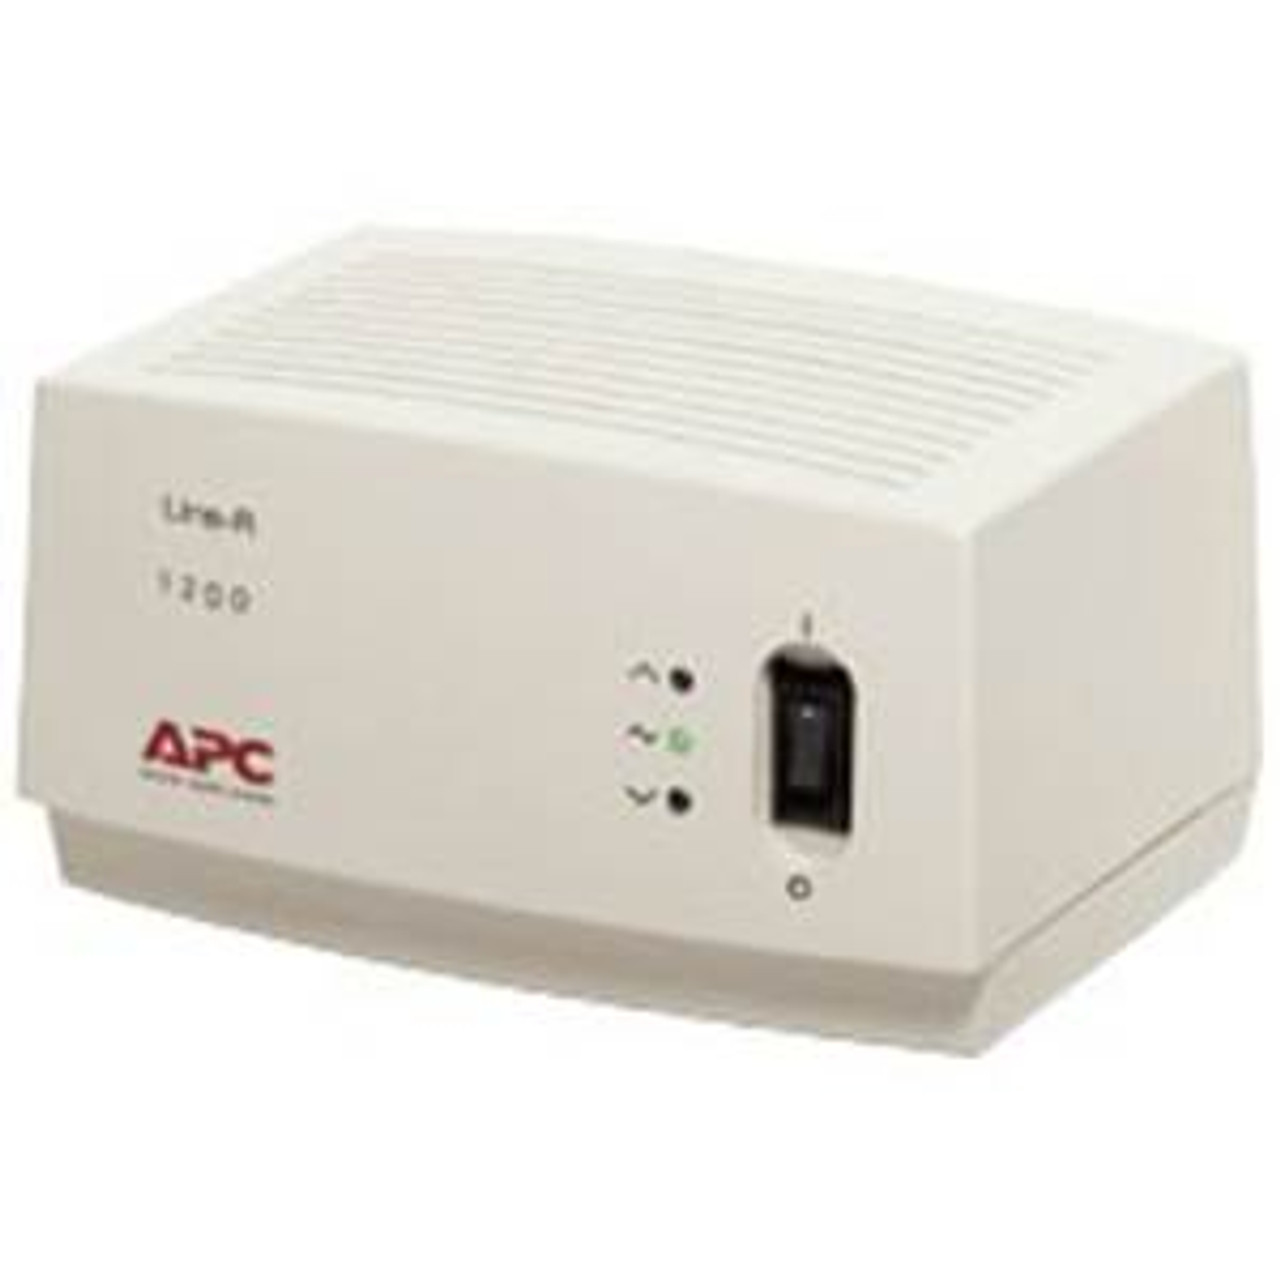 Image for APC Line-R 1200VA Automatic Voltage Regulator (LE1200I) CX Computer Superstore